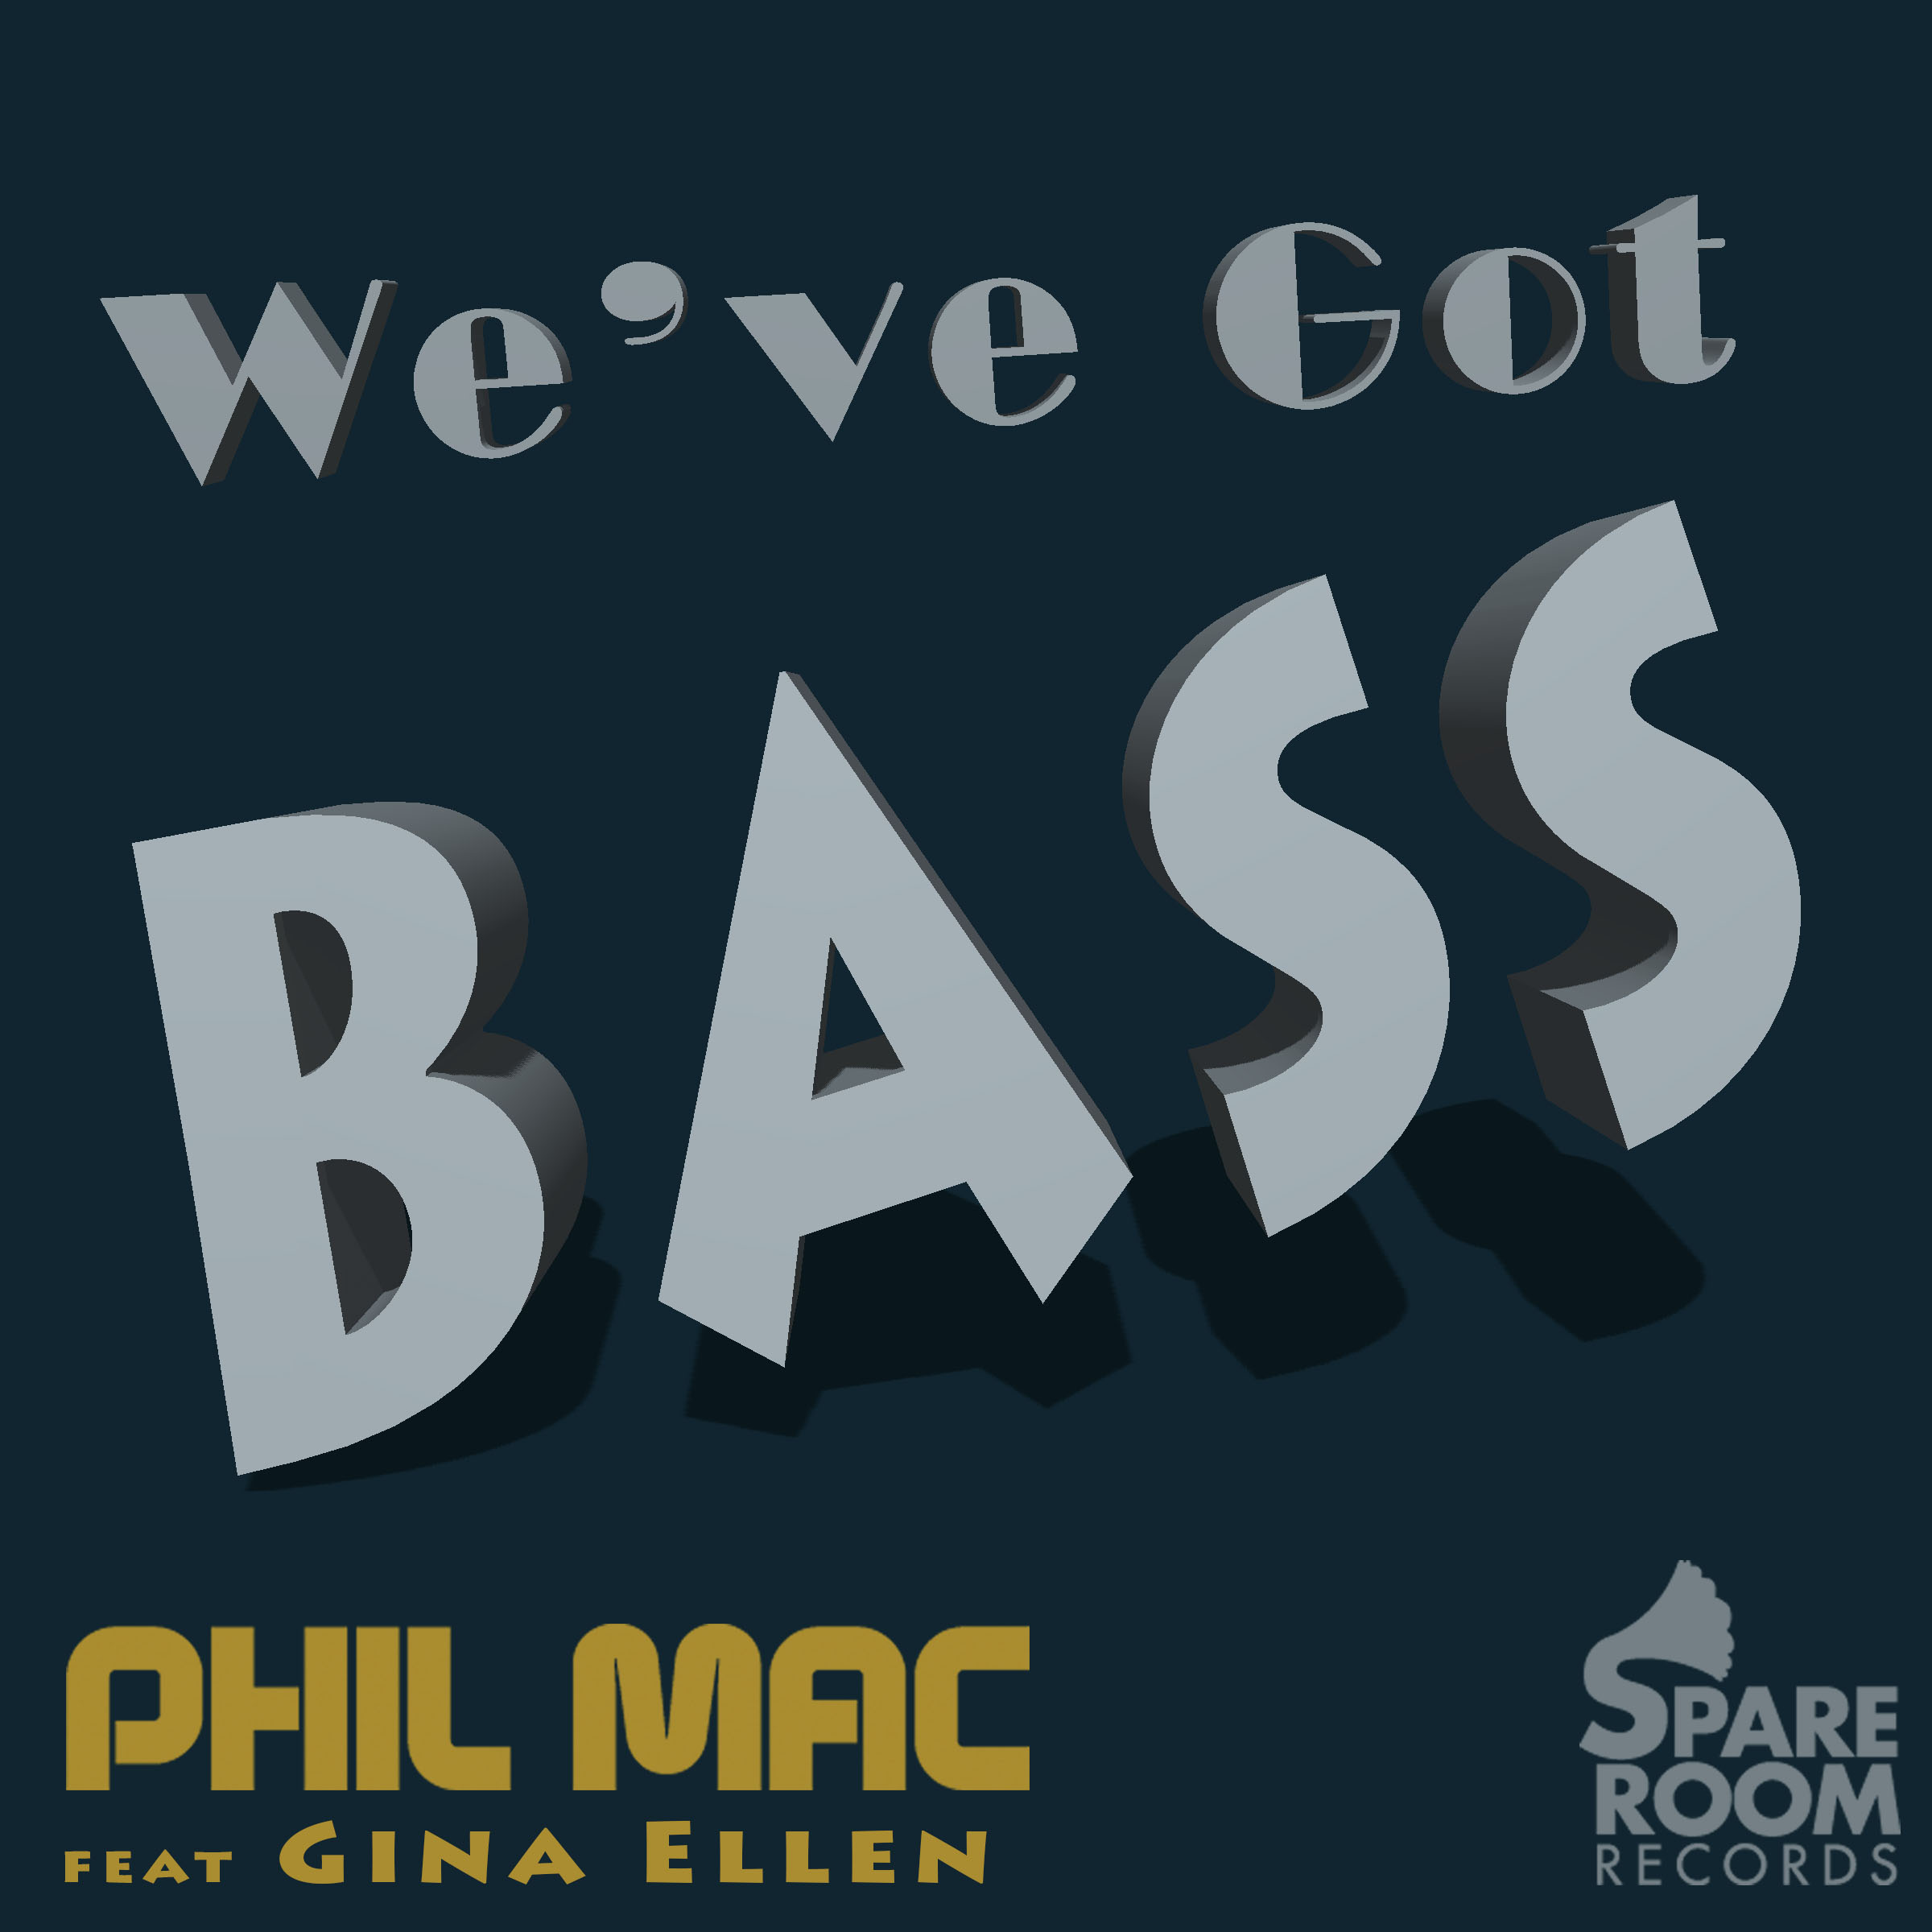 We've Got Bass